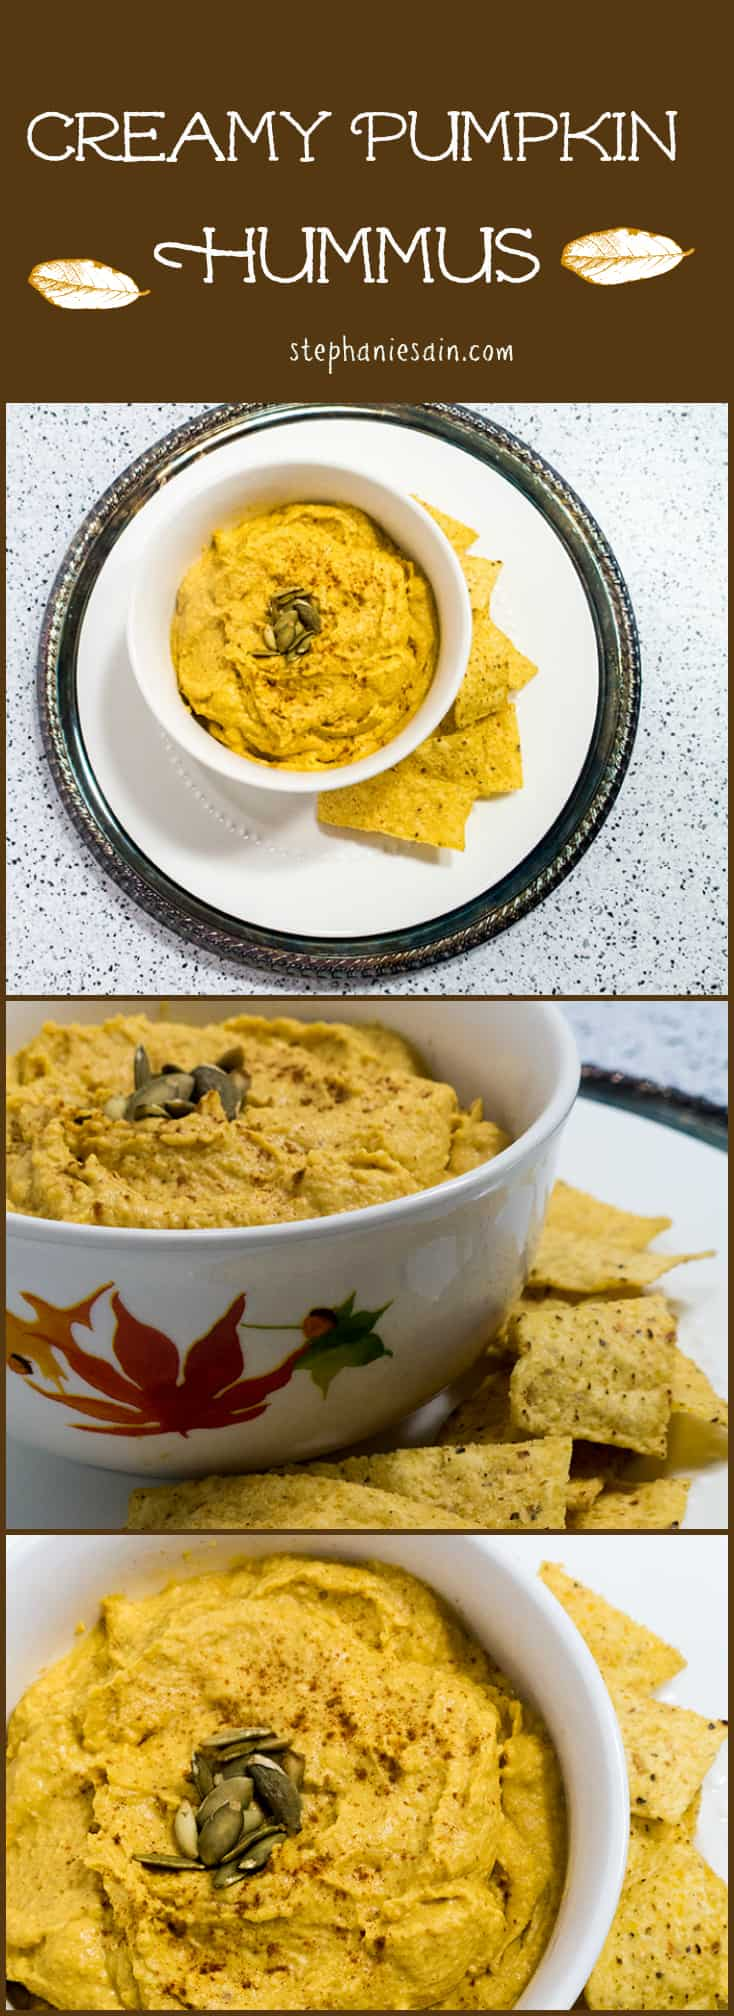 Creamy Pumpkin Hummus is the perfect dip for all your fall festivities. Vegan, Vegetarian, and Gluten Free.